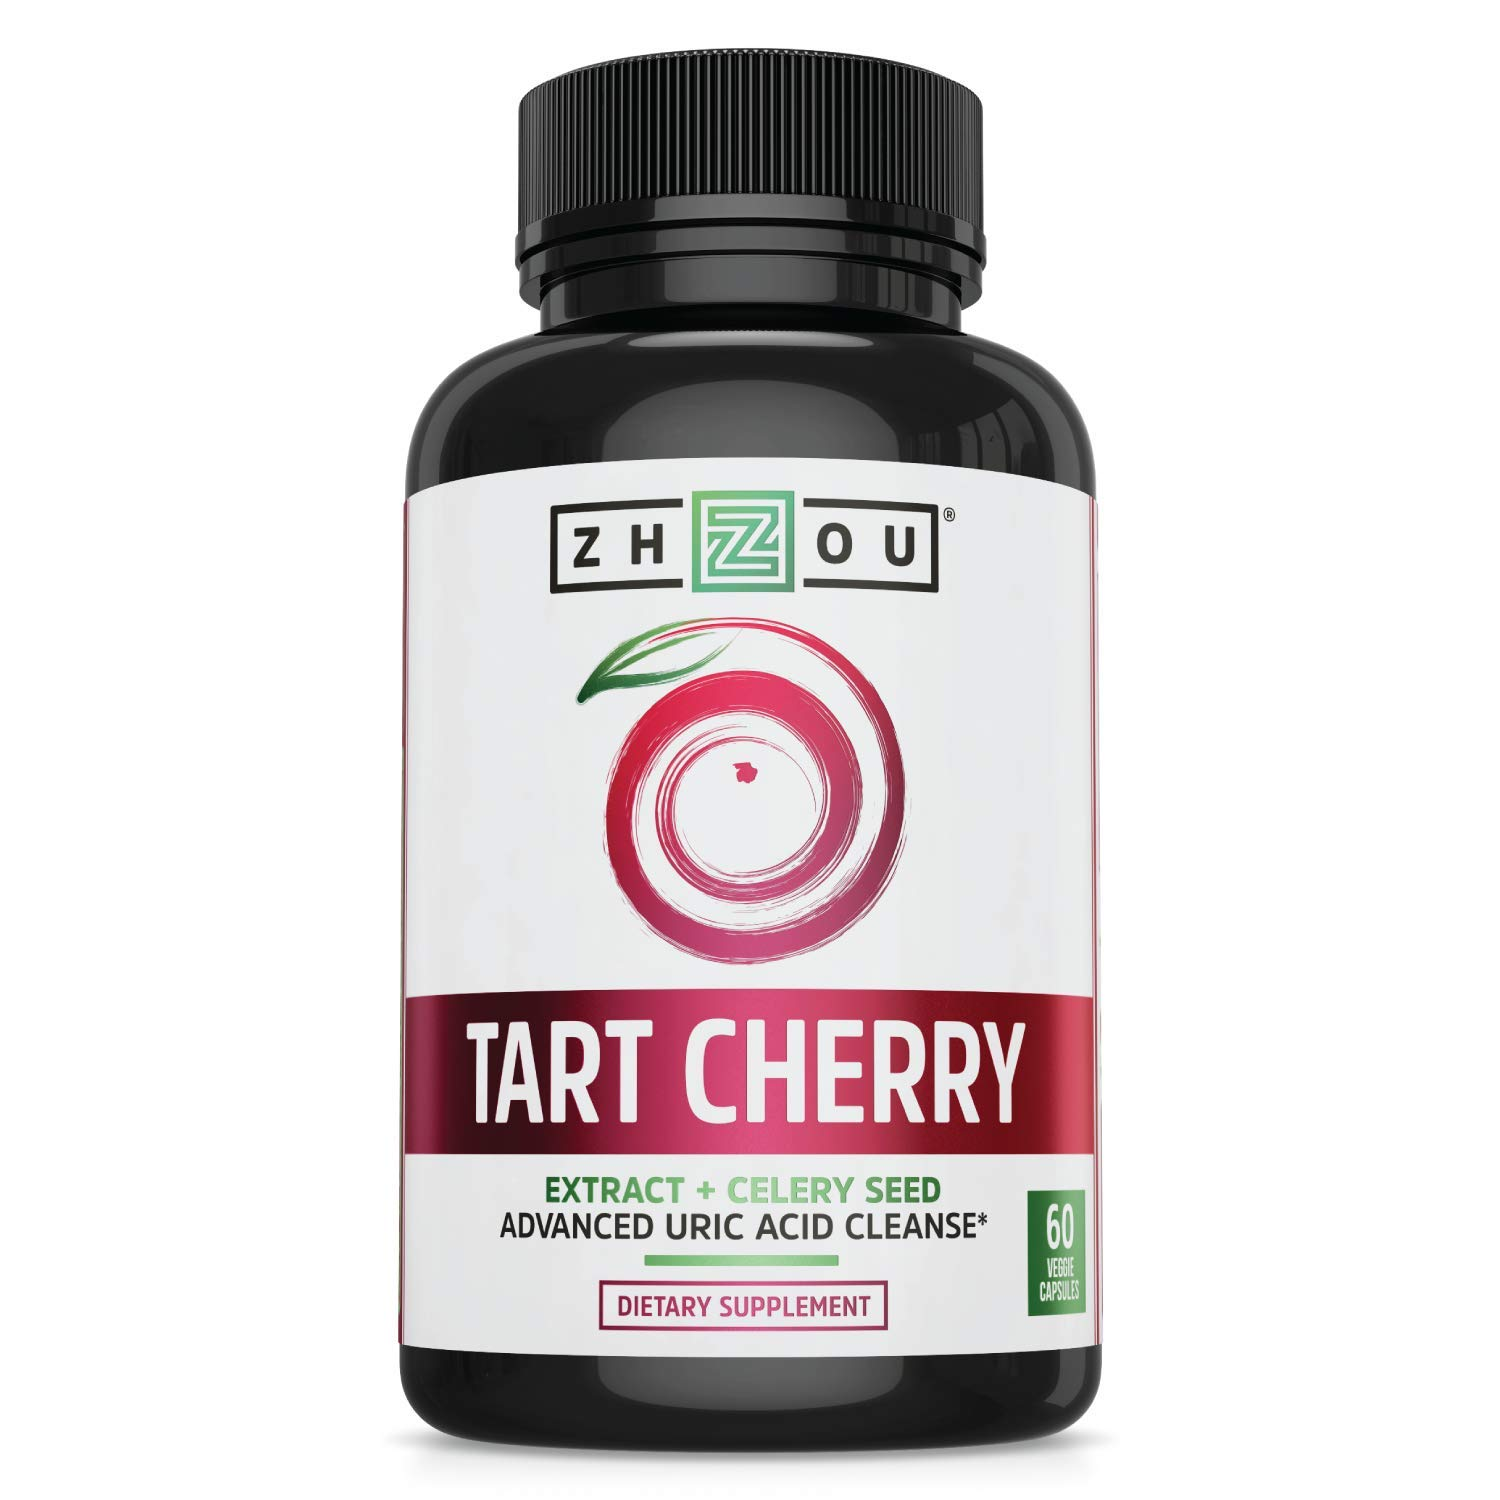 Zhou Tart Cherry Extract with Celery Seed | Advanced Uric Acid Cleanse for Joint Comfort, Healthy Sleep Cycles & Muscle Recovery | 30 Servings, 60 Veggie Caps